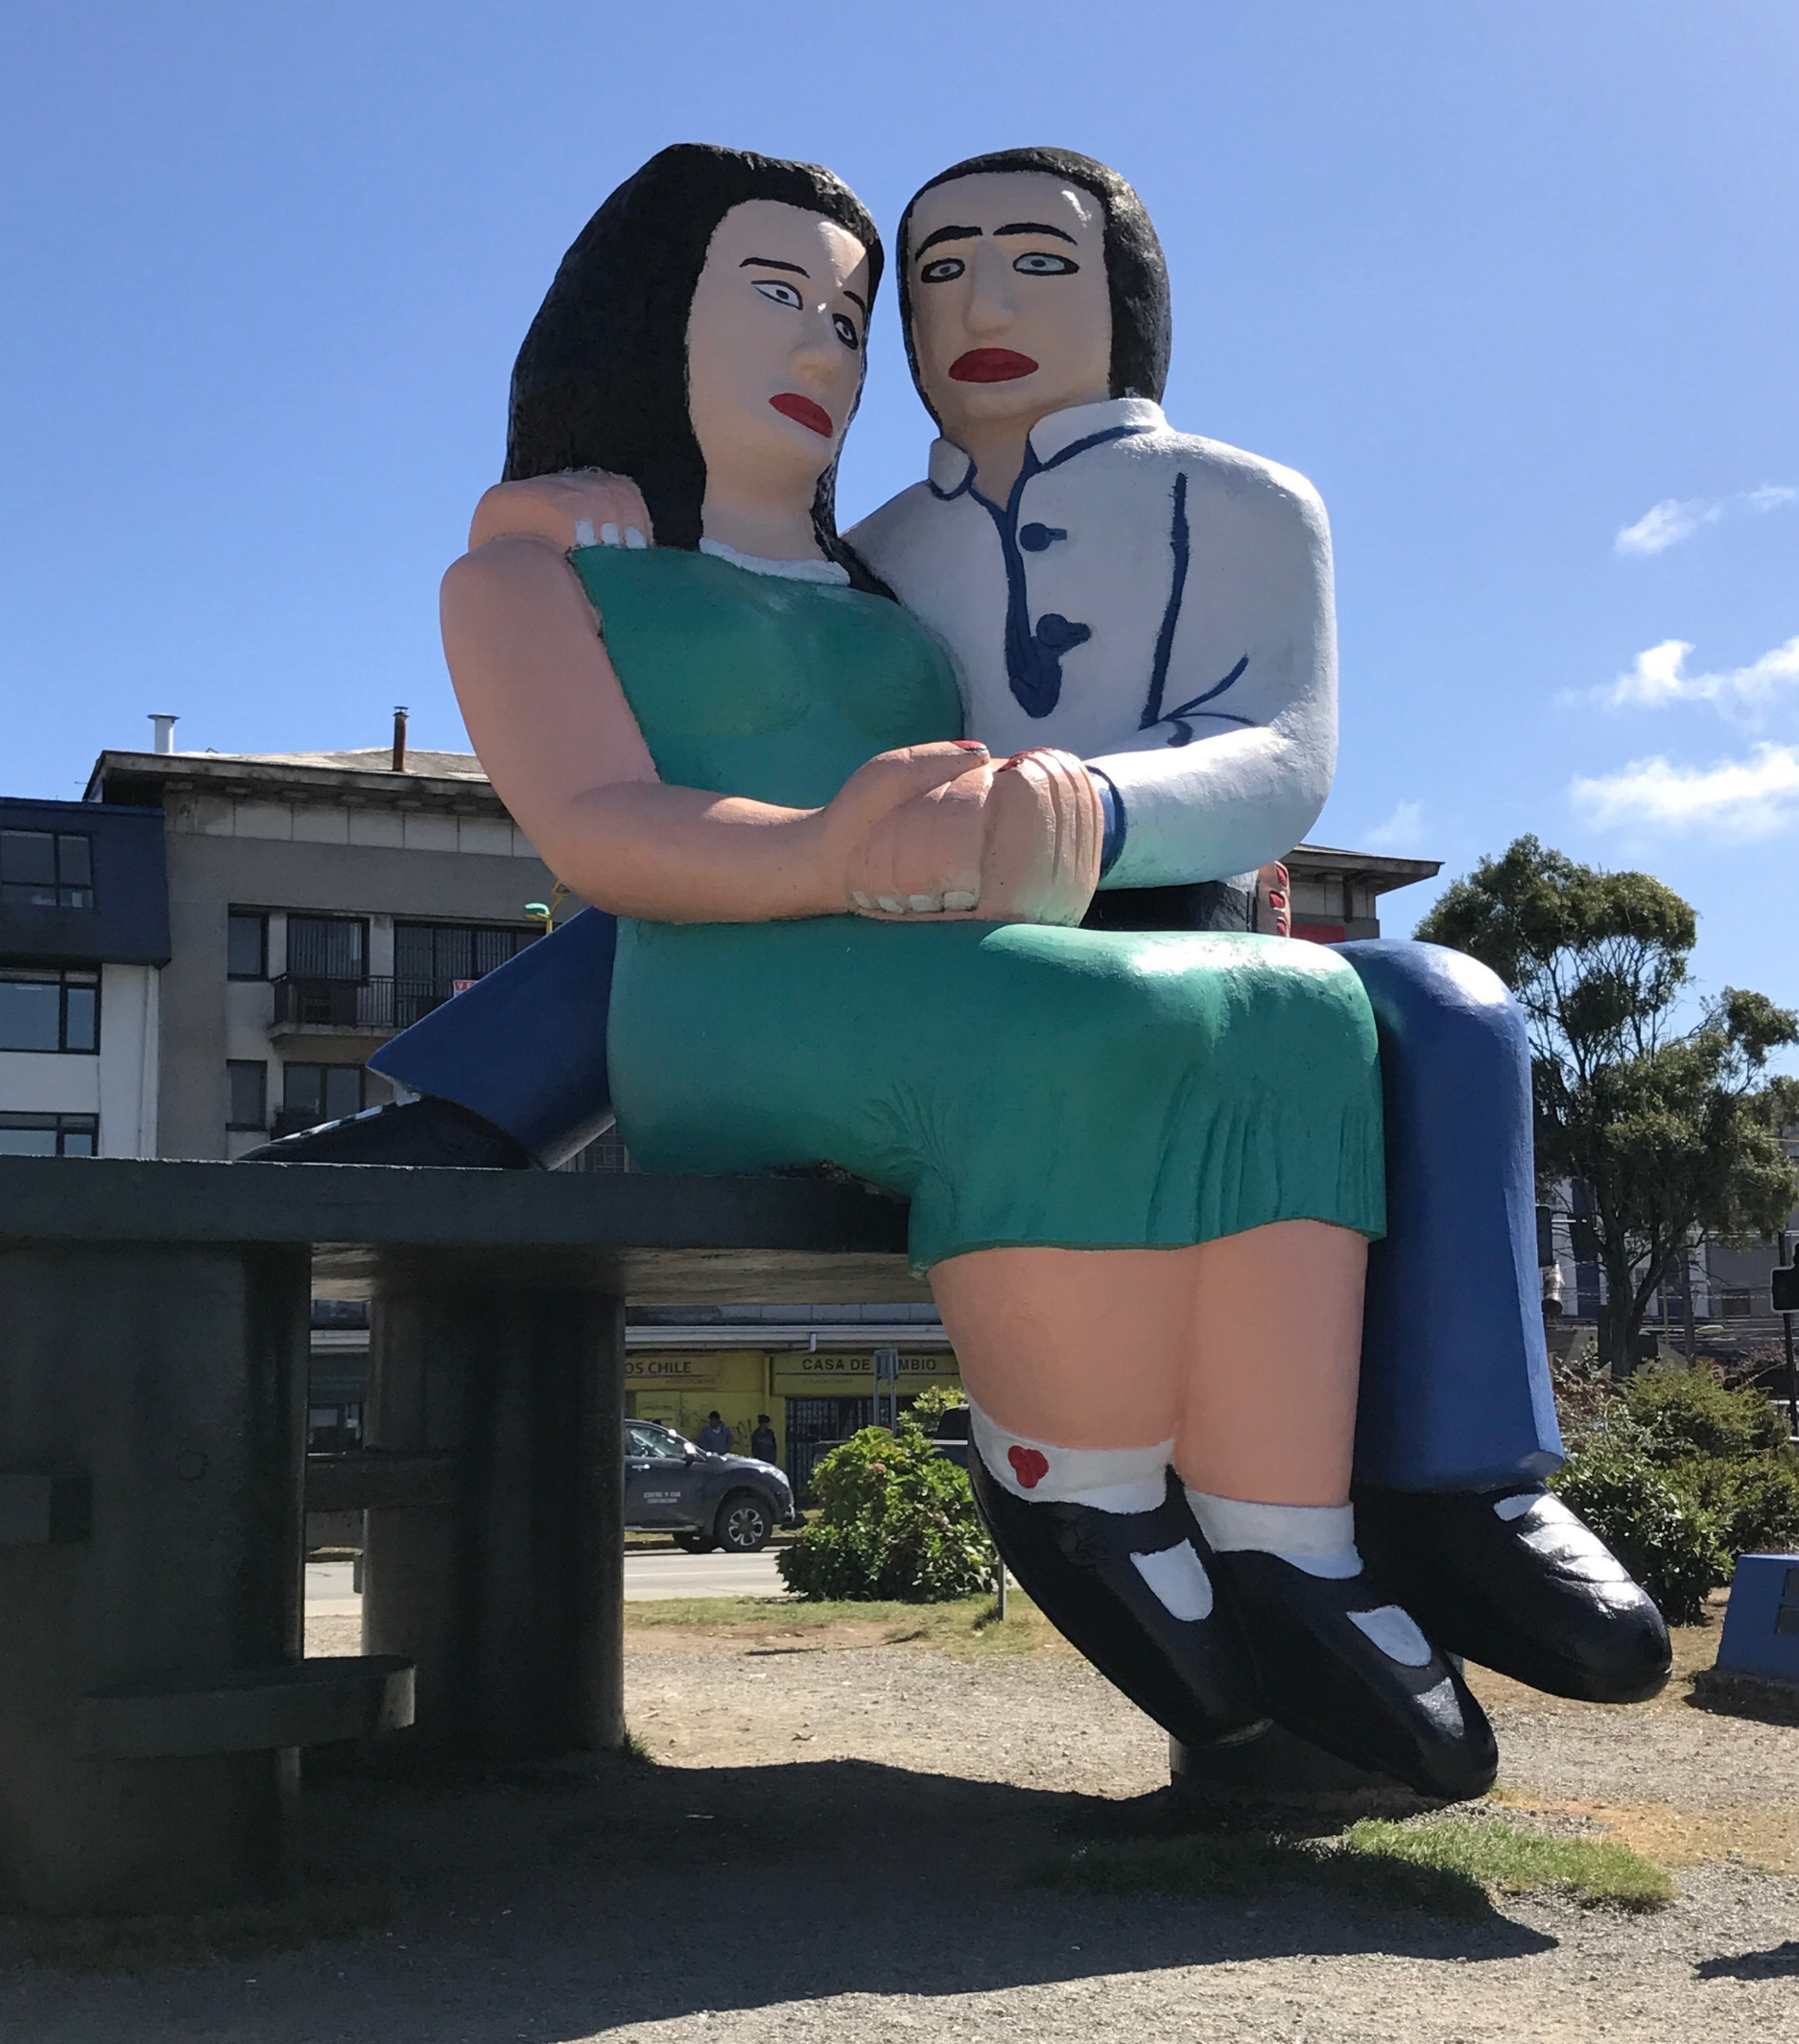 THE TWO LOVERS - Puerto Montt, Chile